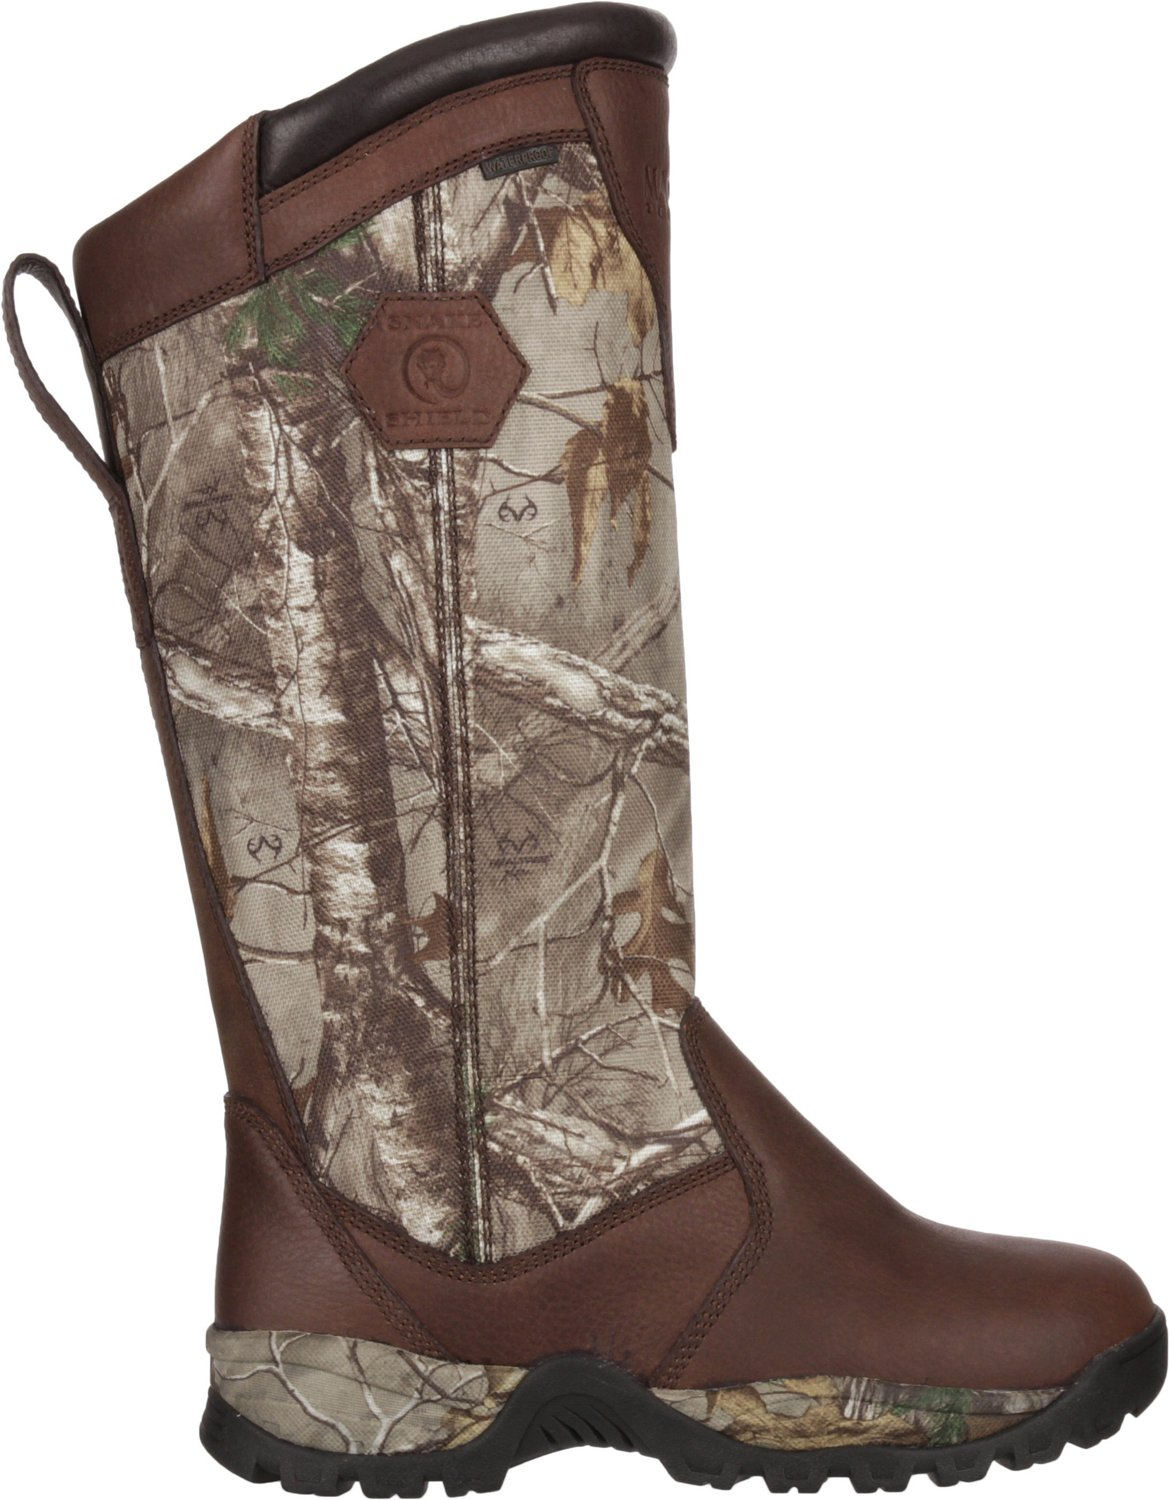 Magellan Outdoors Men's Snake Shield Armor II Hunting Boots - view number 3